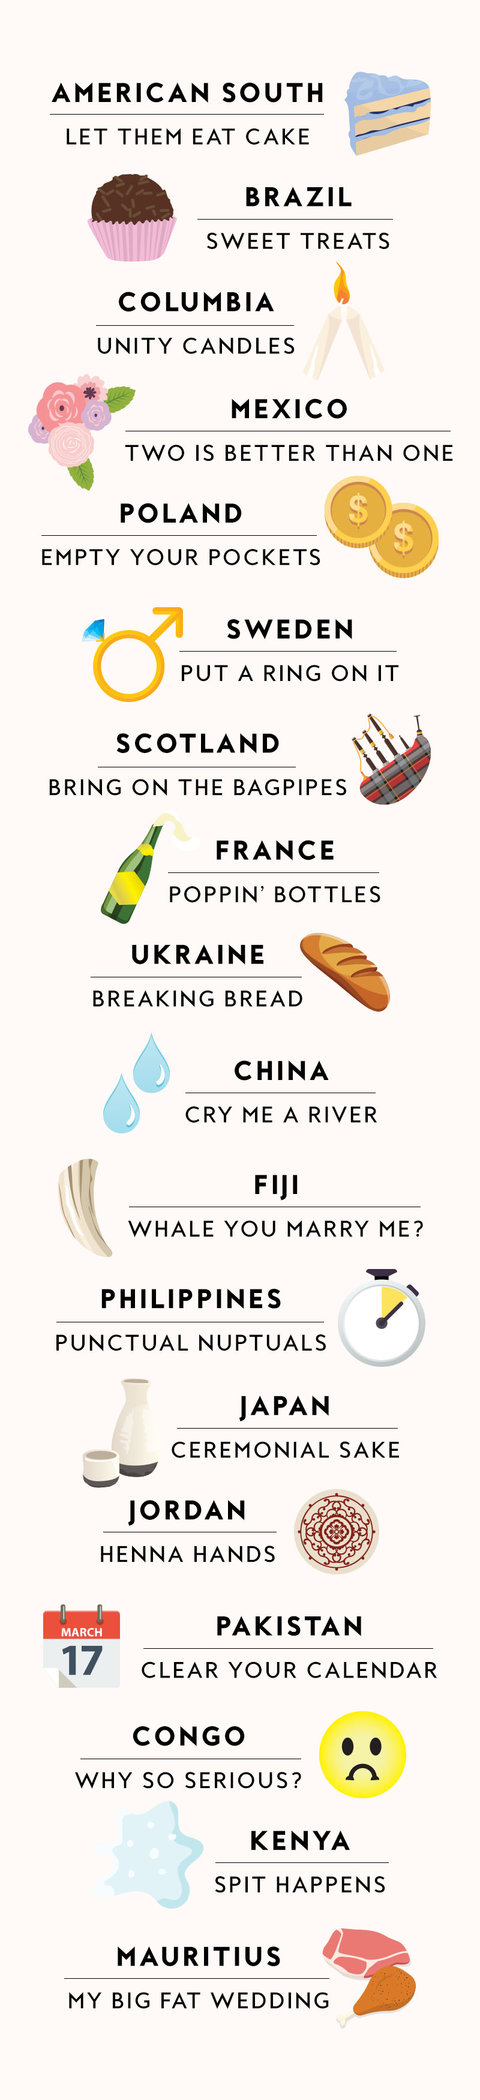 061316-Weddings-Infographic-Traditions[1].jpg